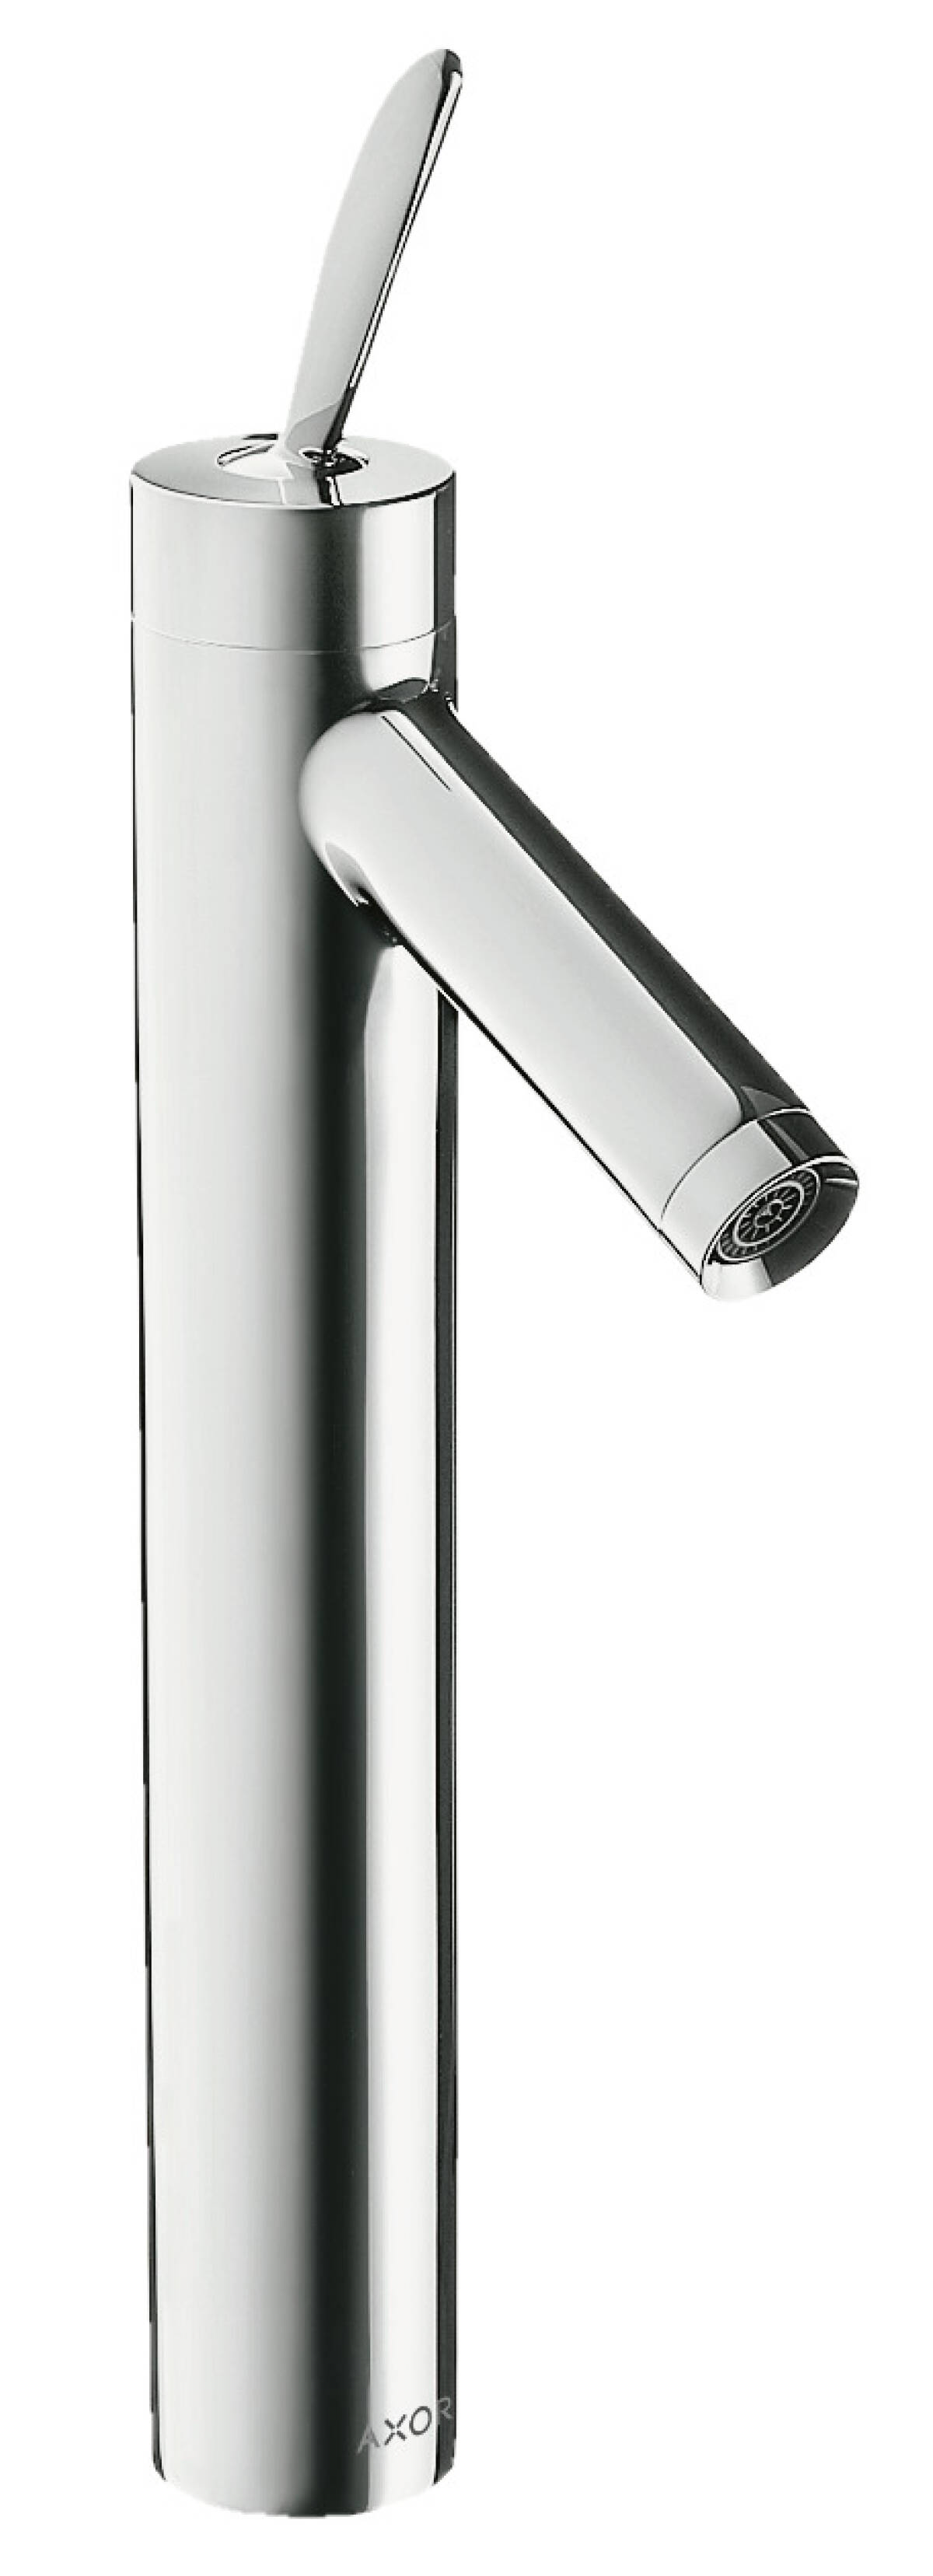 Single lever basin mixer 220 for wash bowls with waste set, Polished Gold Optic, 10028990